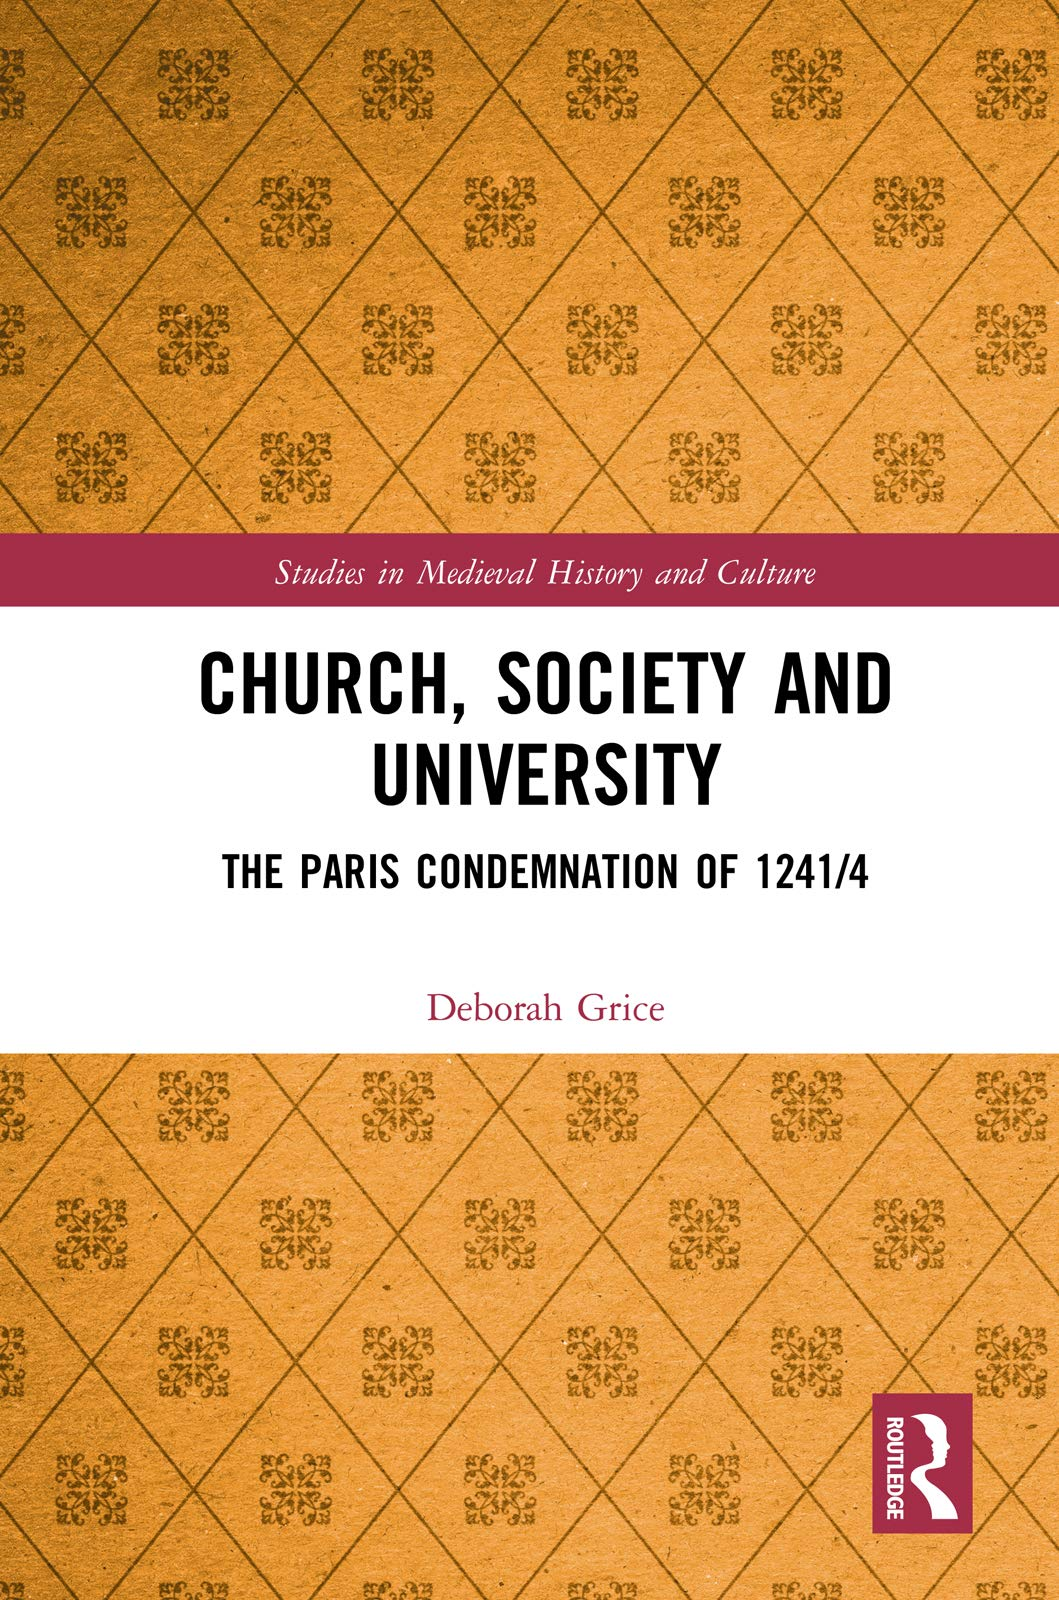 Church, Society and University: The Paris Condemnation of 1241/4 (Studies  in Medieval History and Culture): Amazon.co.uk: Grice, Deborah:  9780367194383: Books